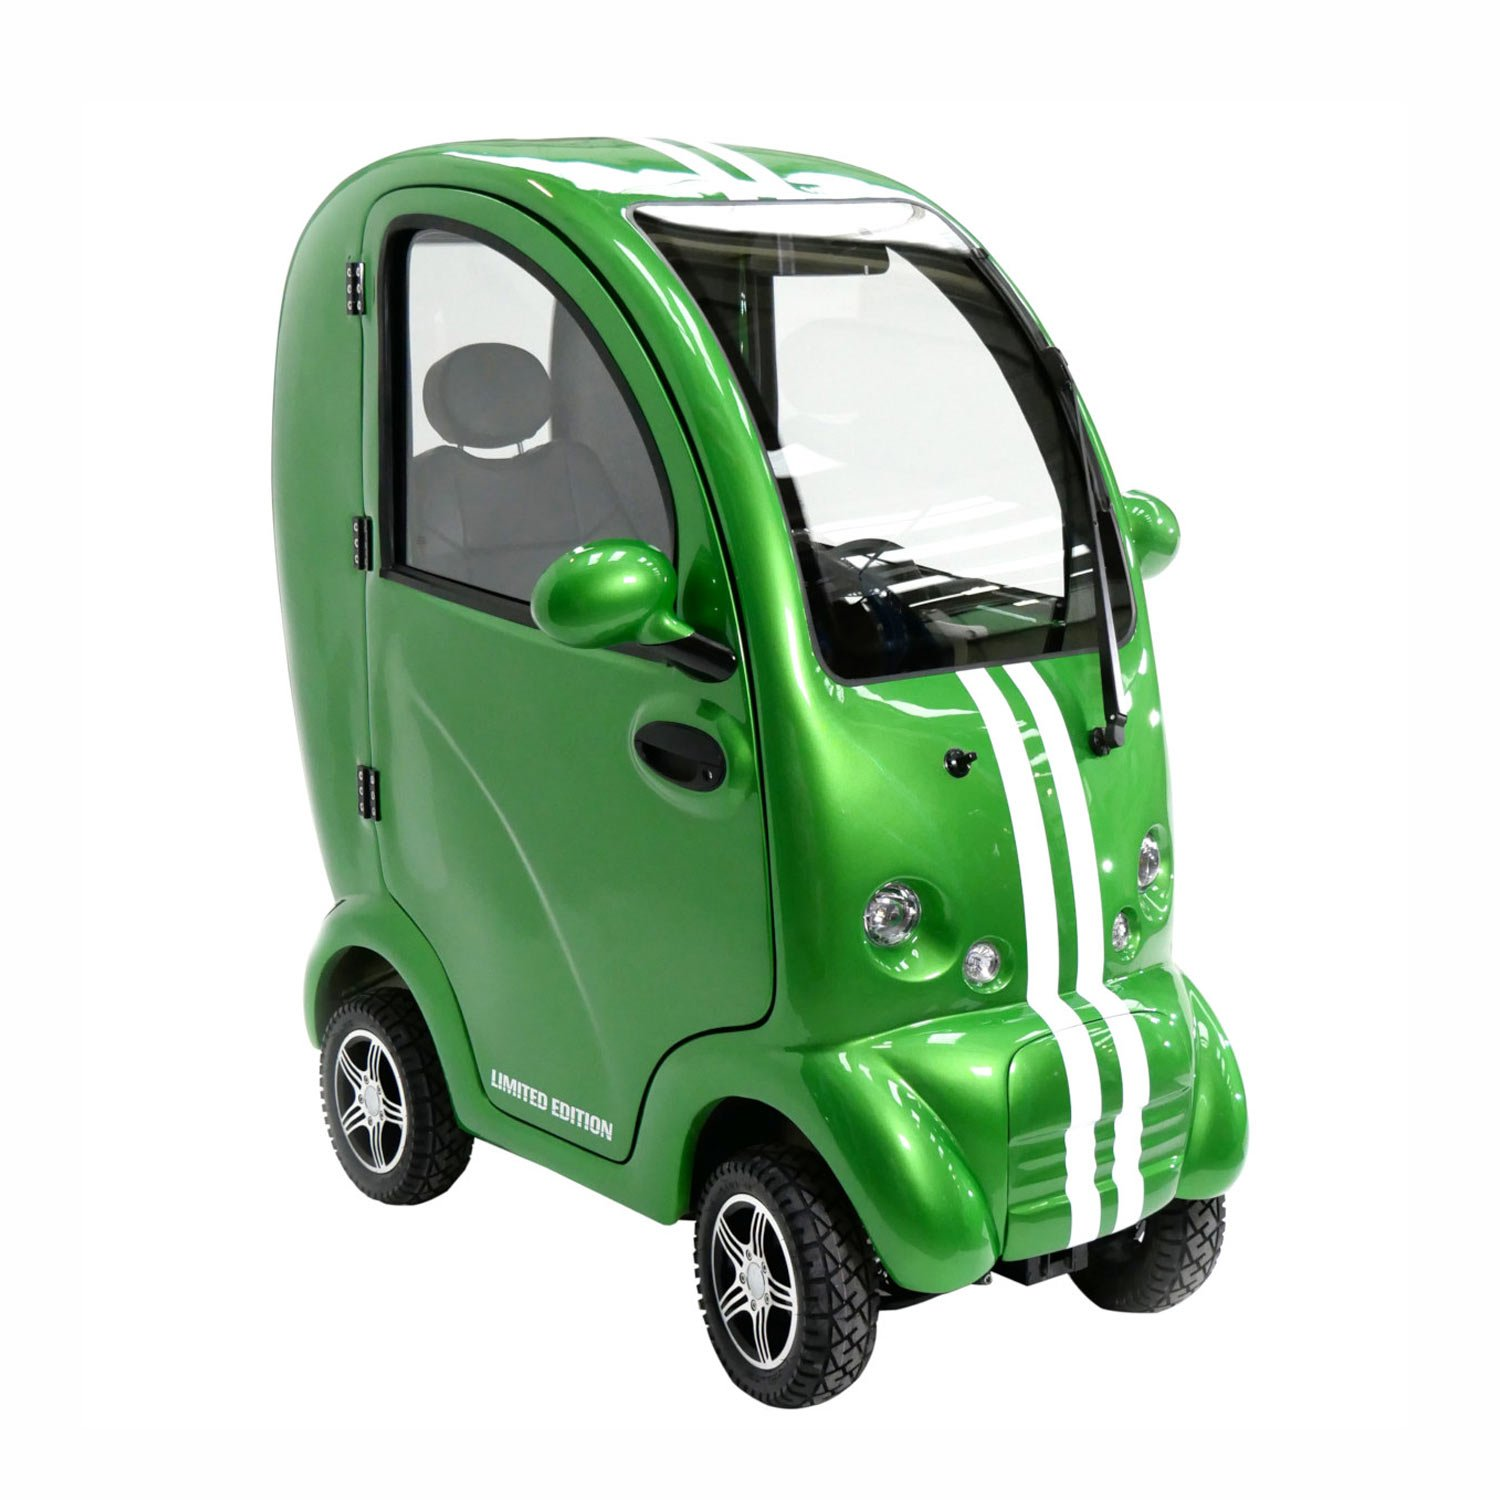 Shropshire Mobility Solutions - MK2 Cabin Car Suppliers - green scooterpac cabin car for sale